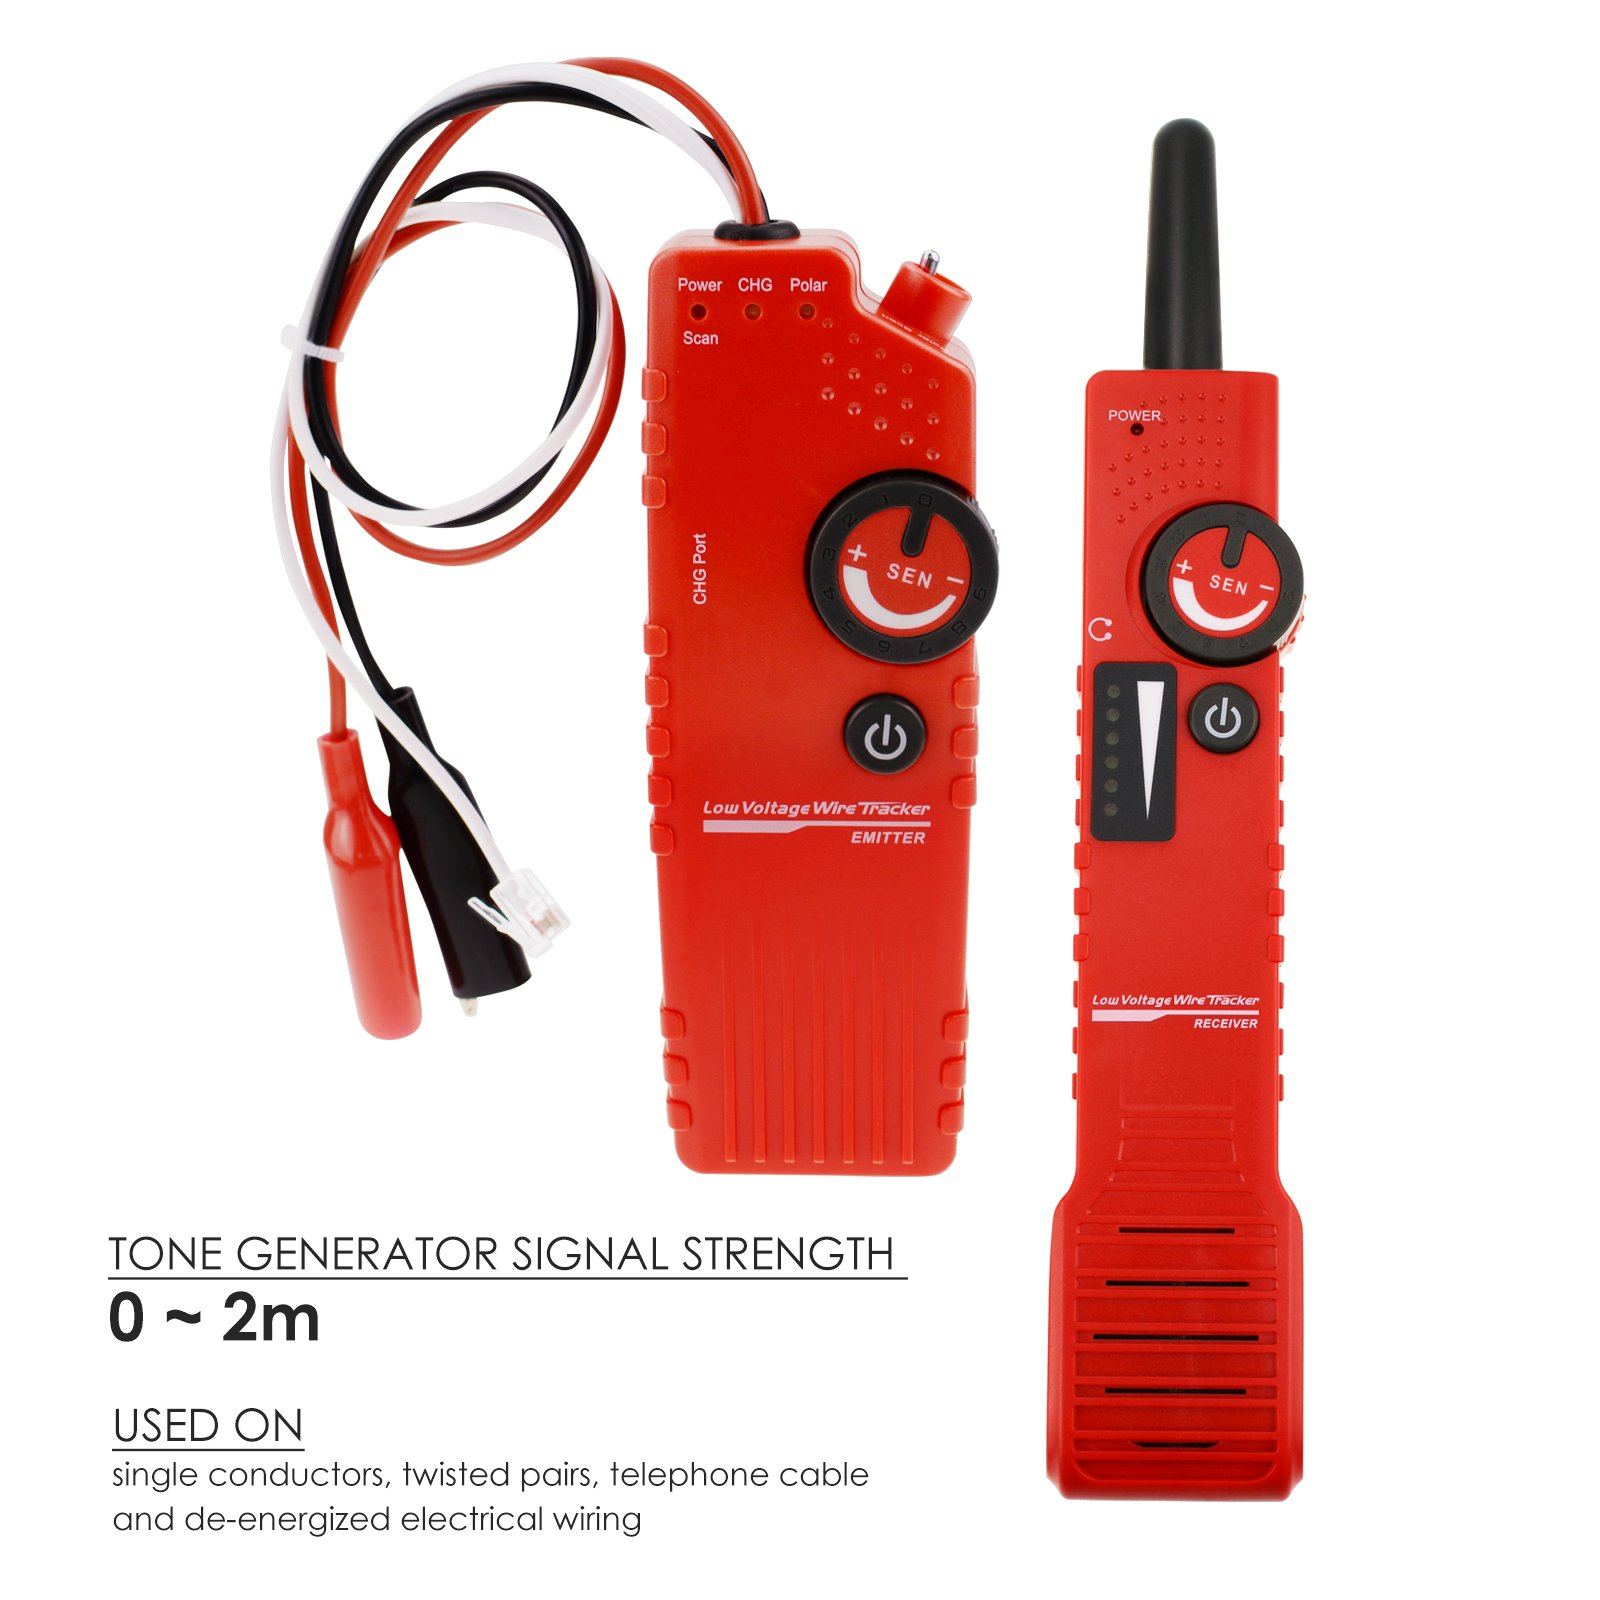 hight resolution of detects power cable coax cable telephone cable network cable multi core metal line etc